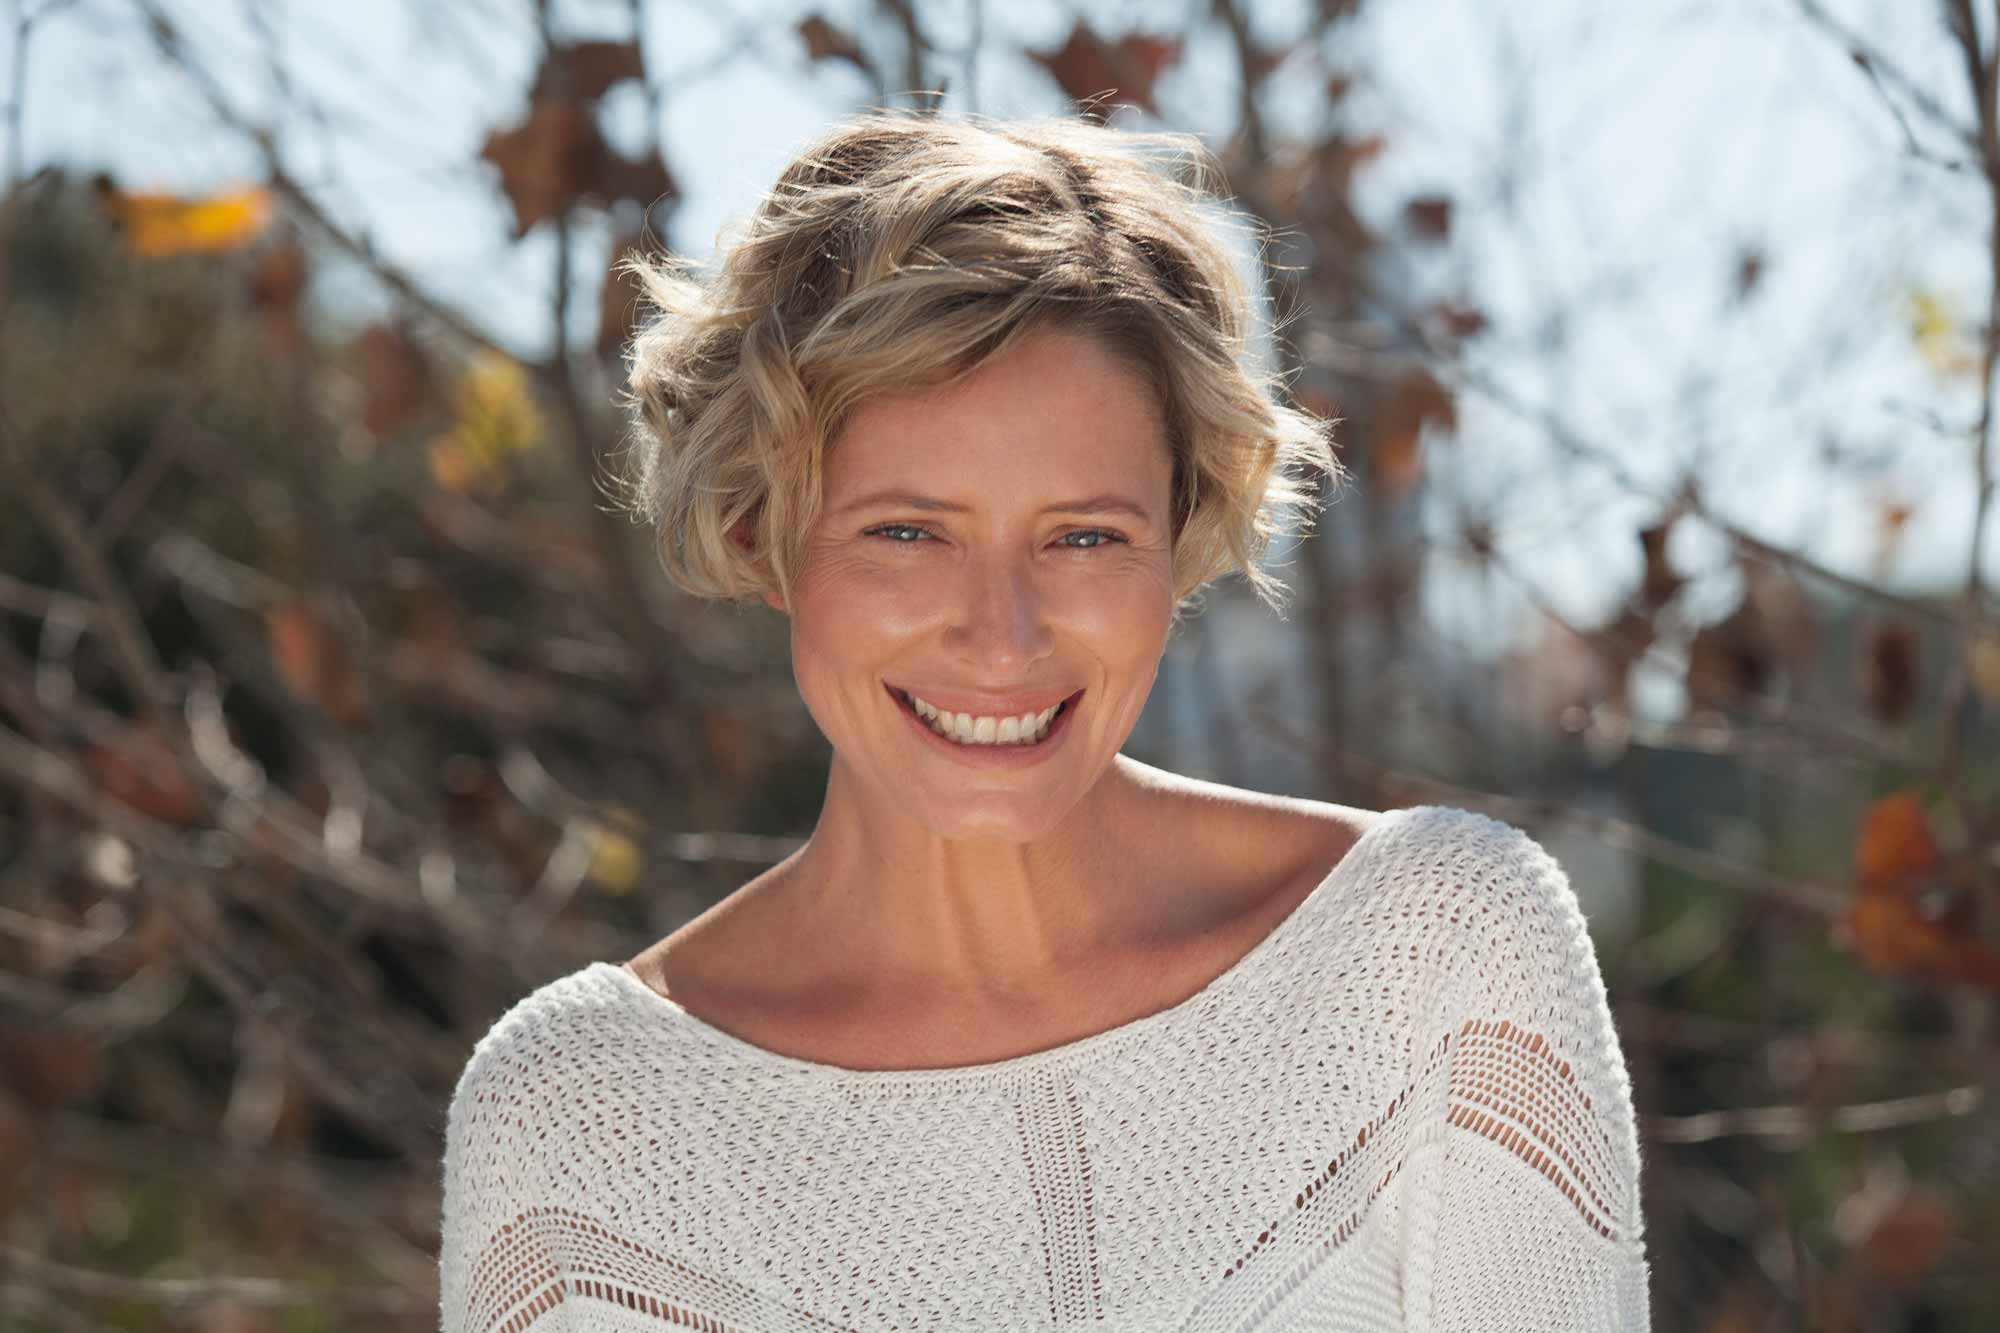 5 Cool Shoulder Length And Short Haircuts For Women Over 40 Inside Short Haircuts For Women Over 40 With Curly Hair (View 8 of 25)